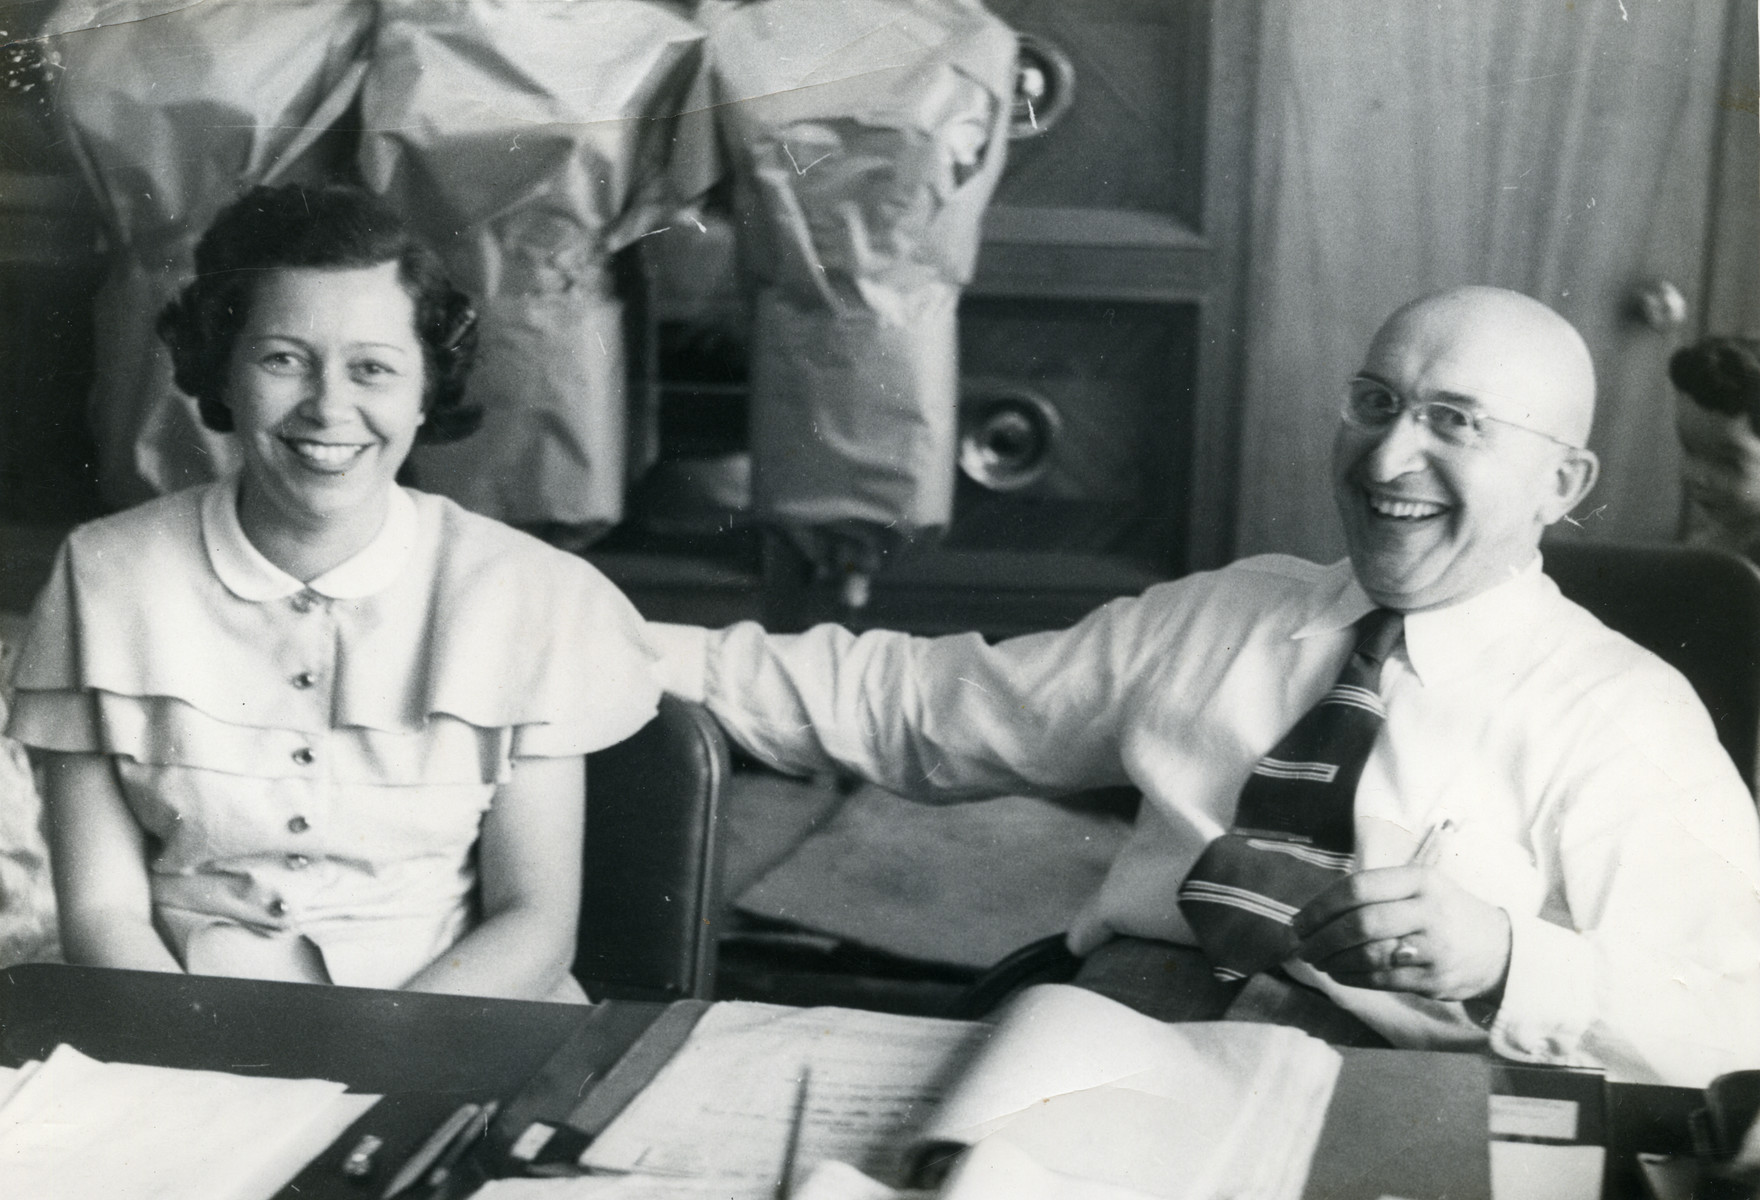 Erna and Saul Cassel sit together in their store.